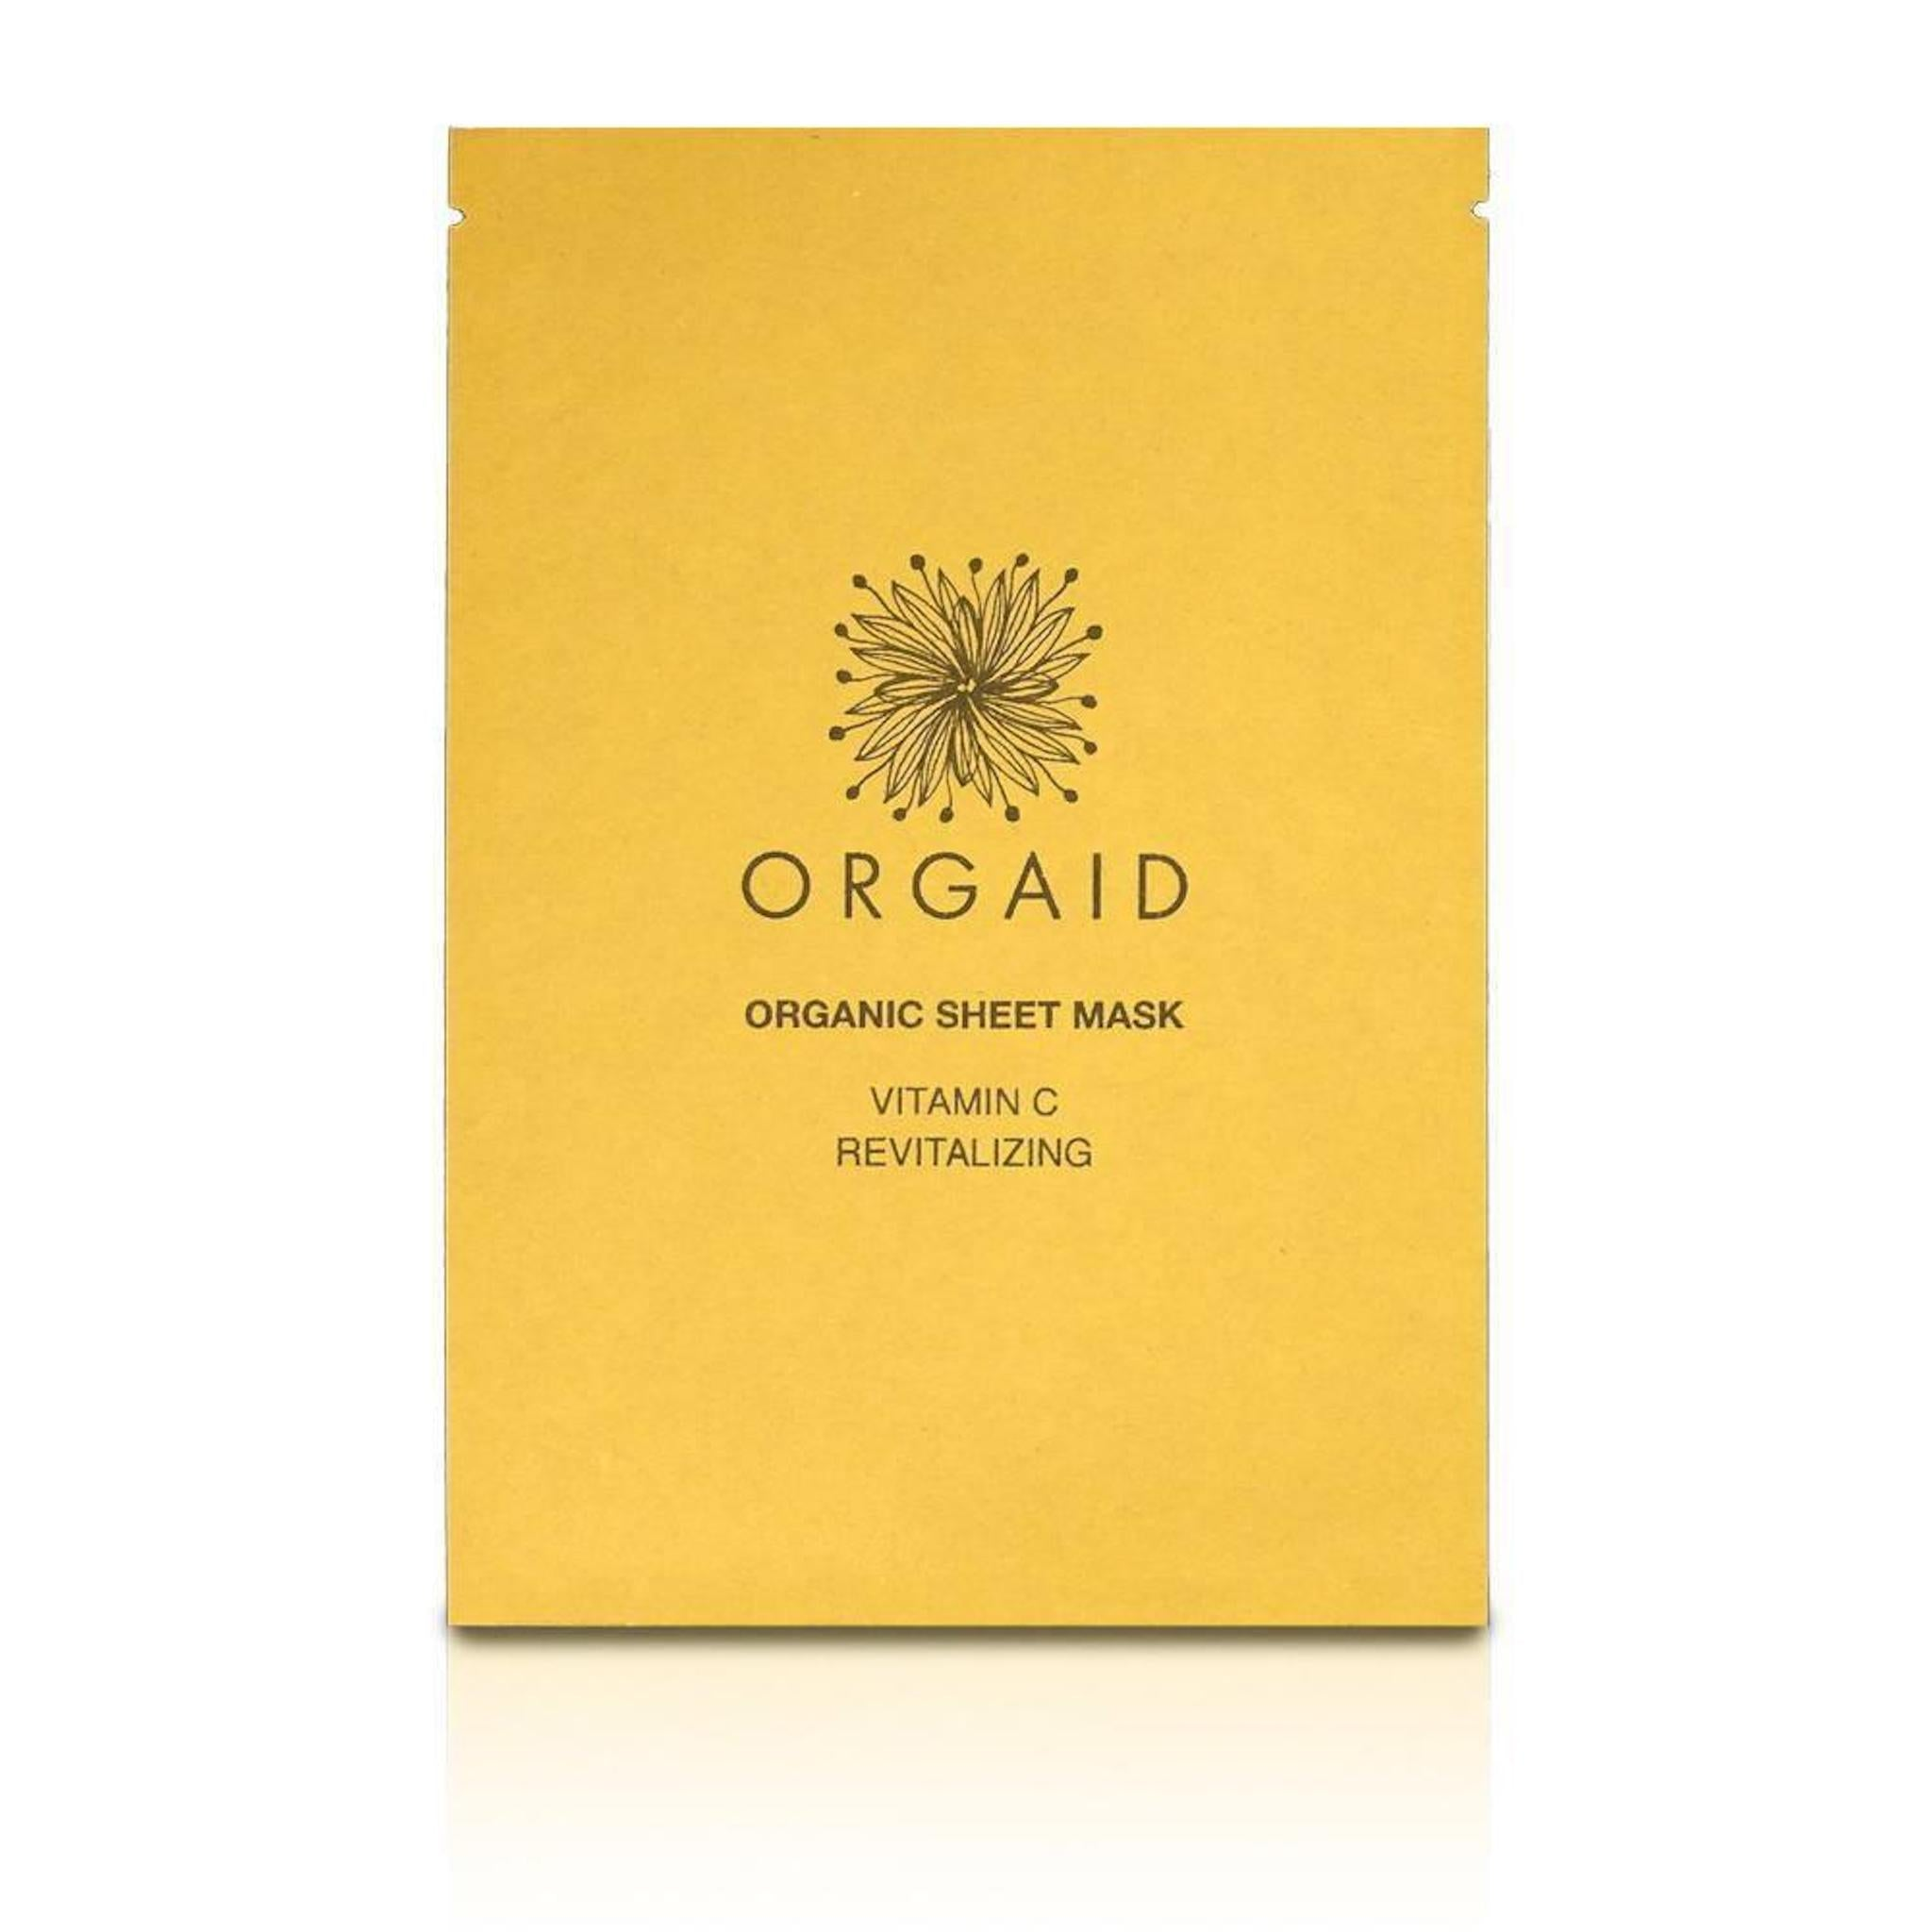 Orgaid - Organic Sheet Mask / Vitamin C & Revitilizing (Single)